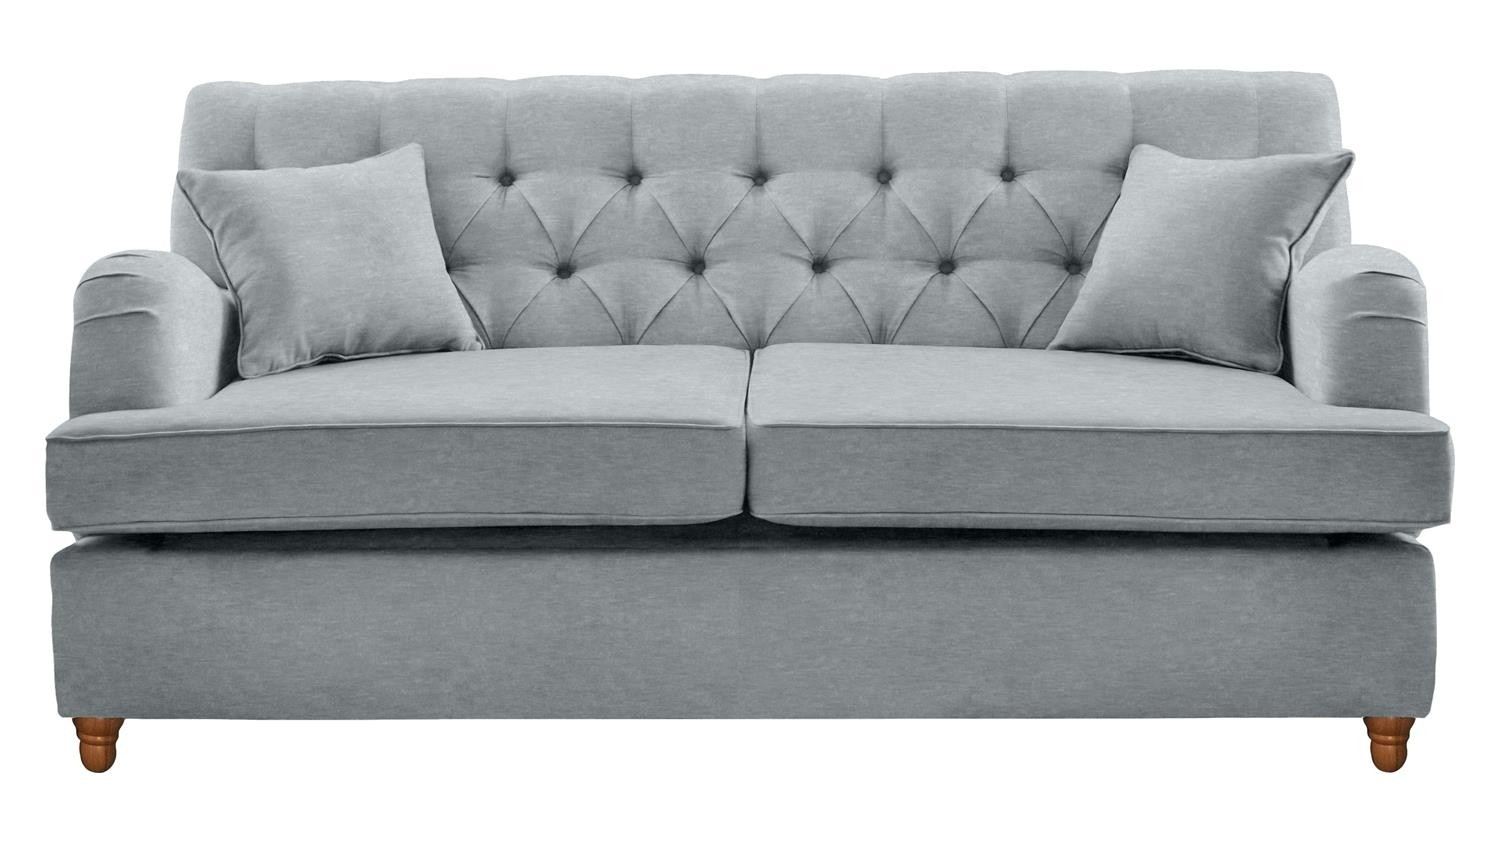 The Foxcote 4 Seater Sofa Bed